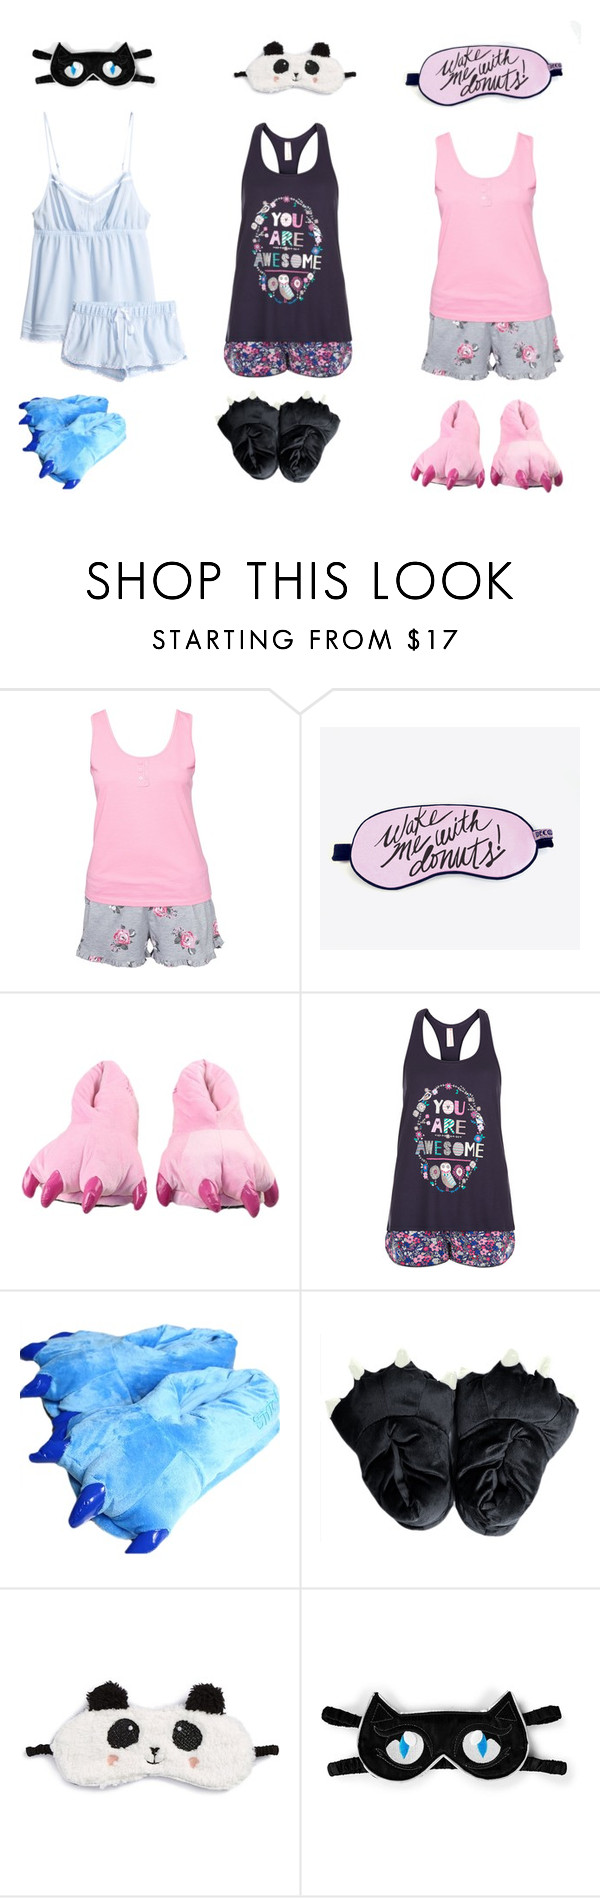 """""""Claw slippers"""" by pandoraprincess15 ❤ liked on Polyvore featuring beauty, Hunkemöller, Accessorize, P.J. Salvage, Karl Lagerfeld and H&M"""